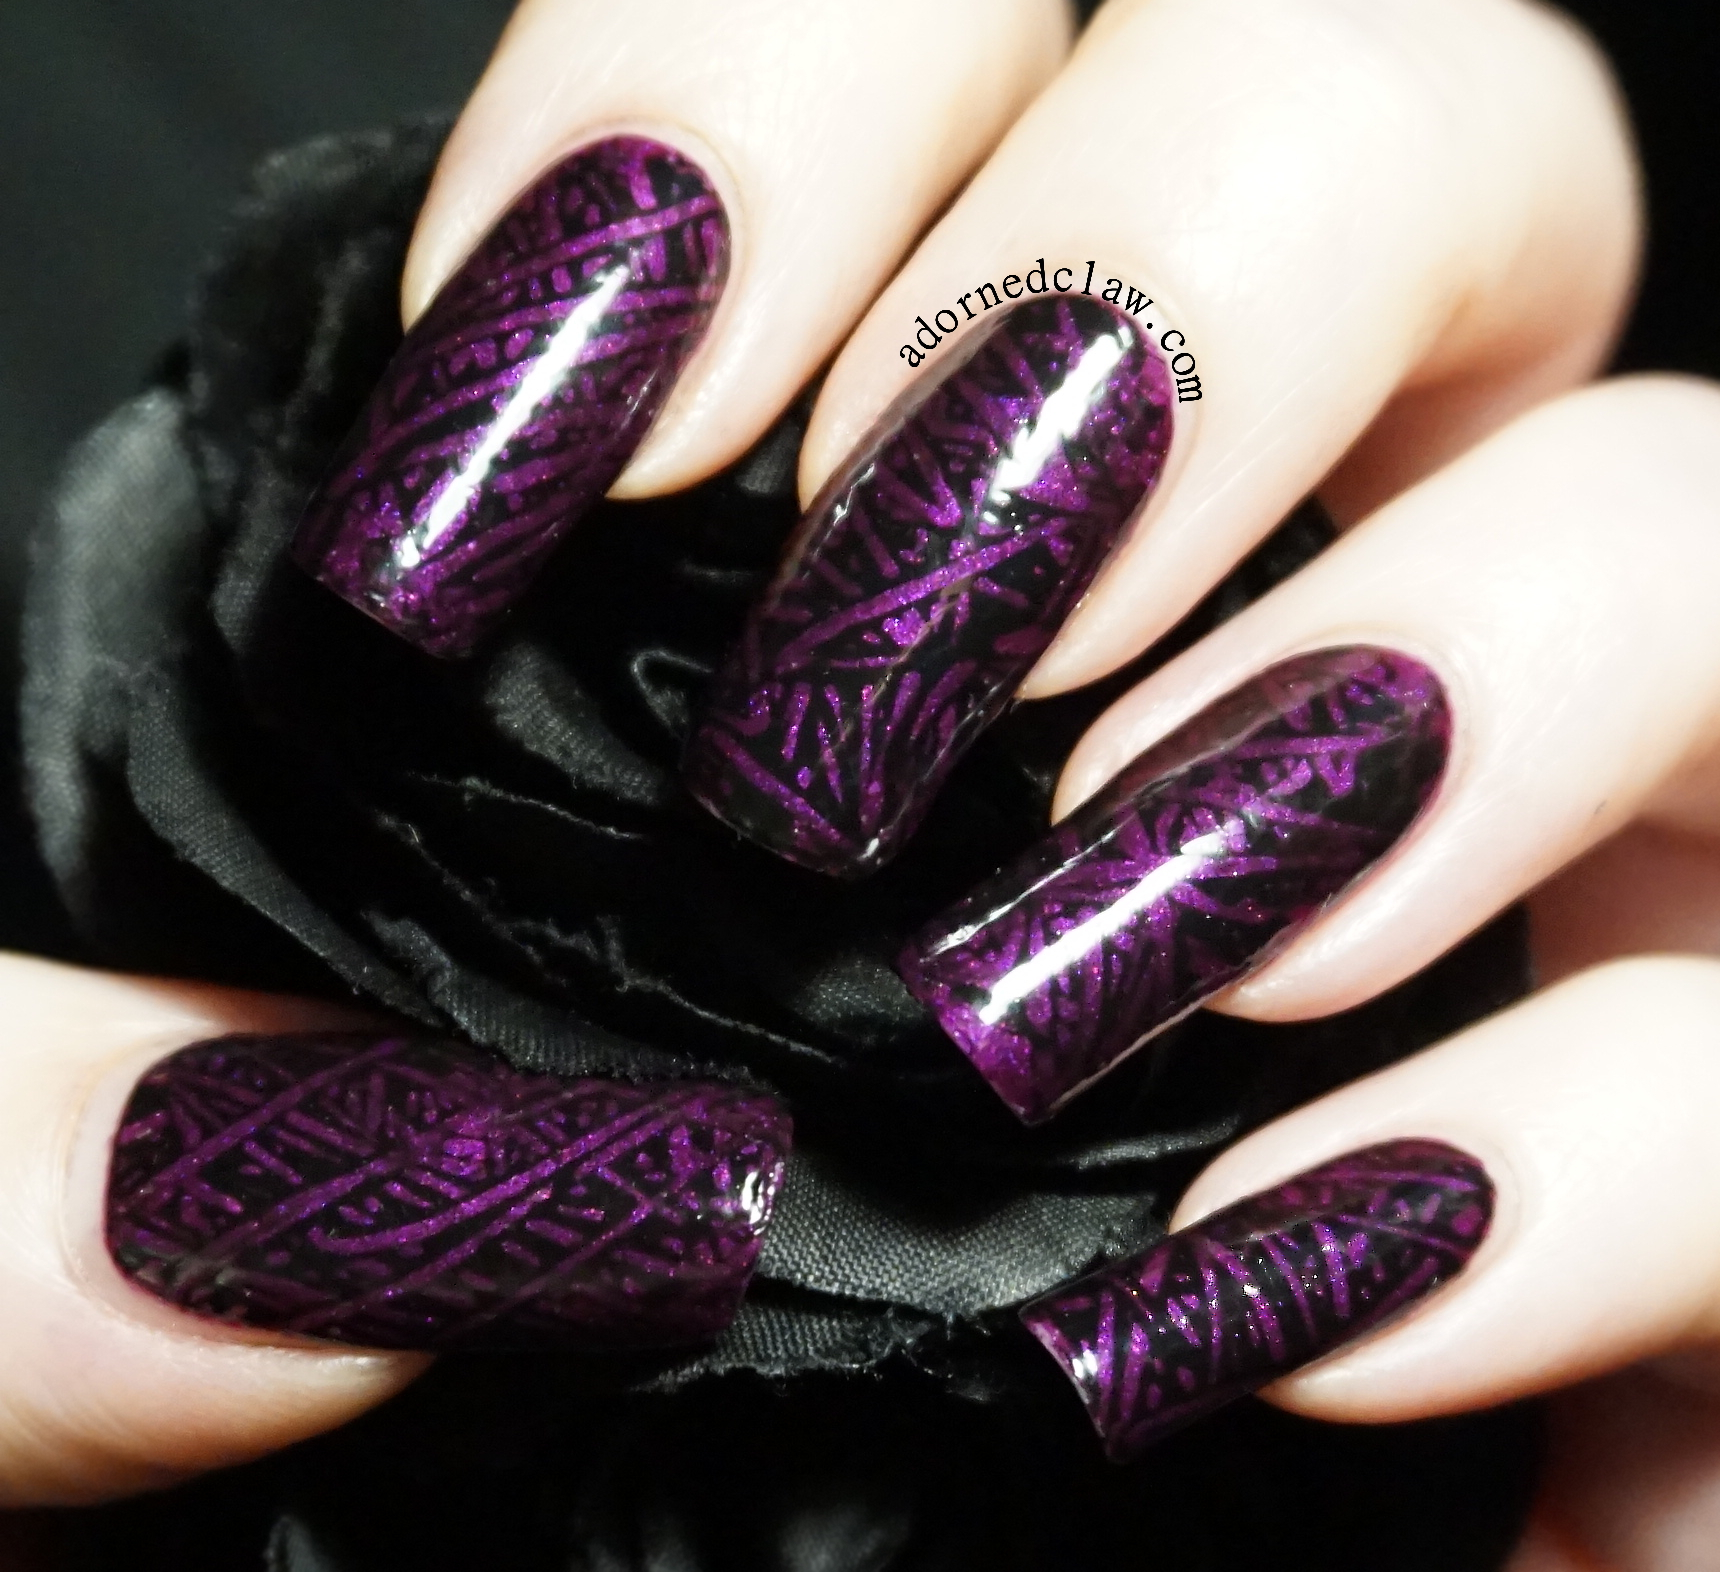 Manicure | The Adorned Claw